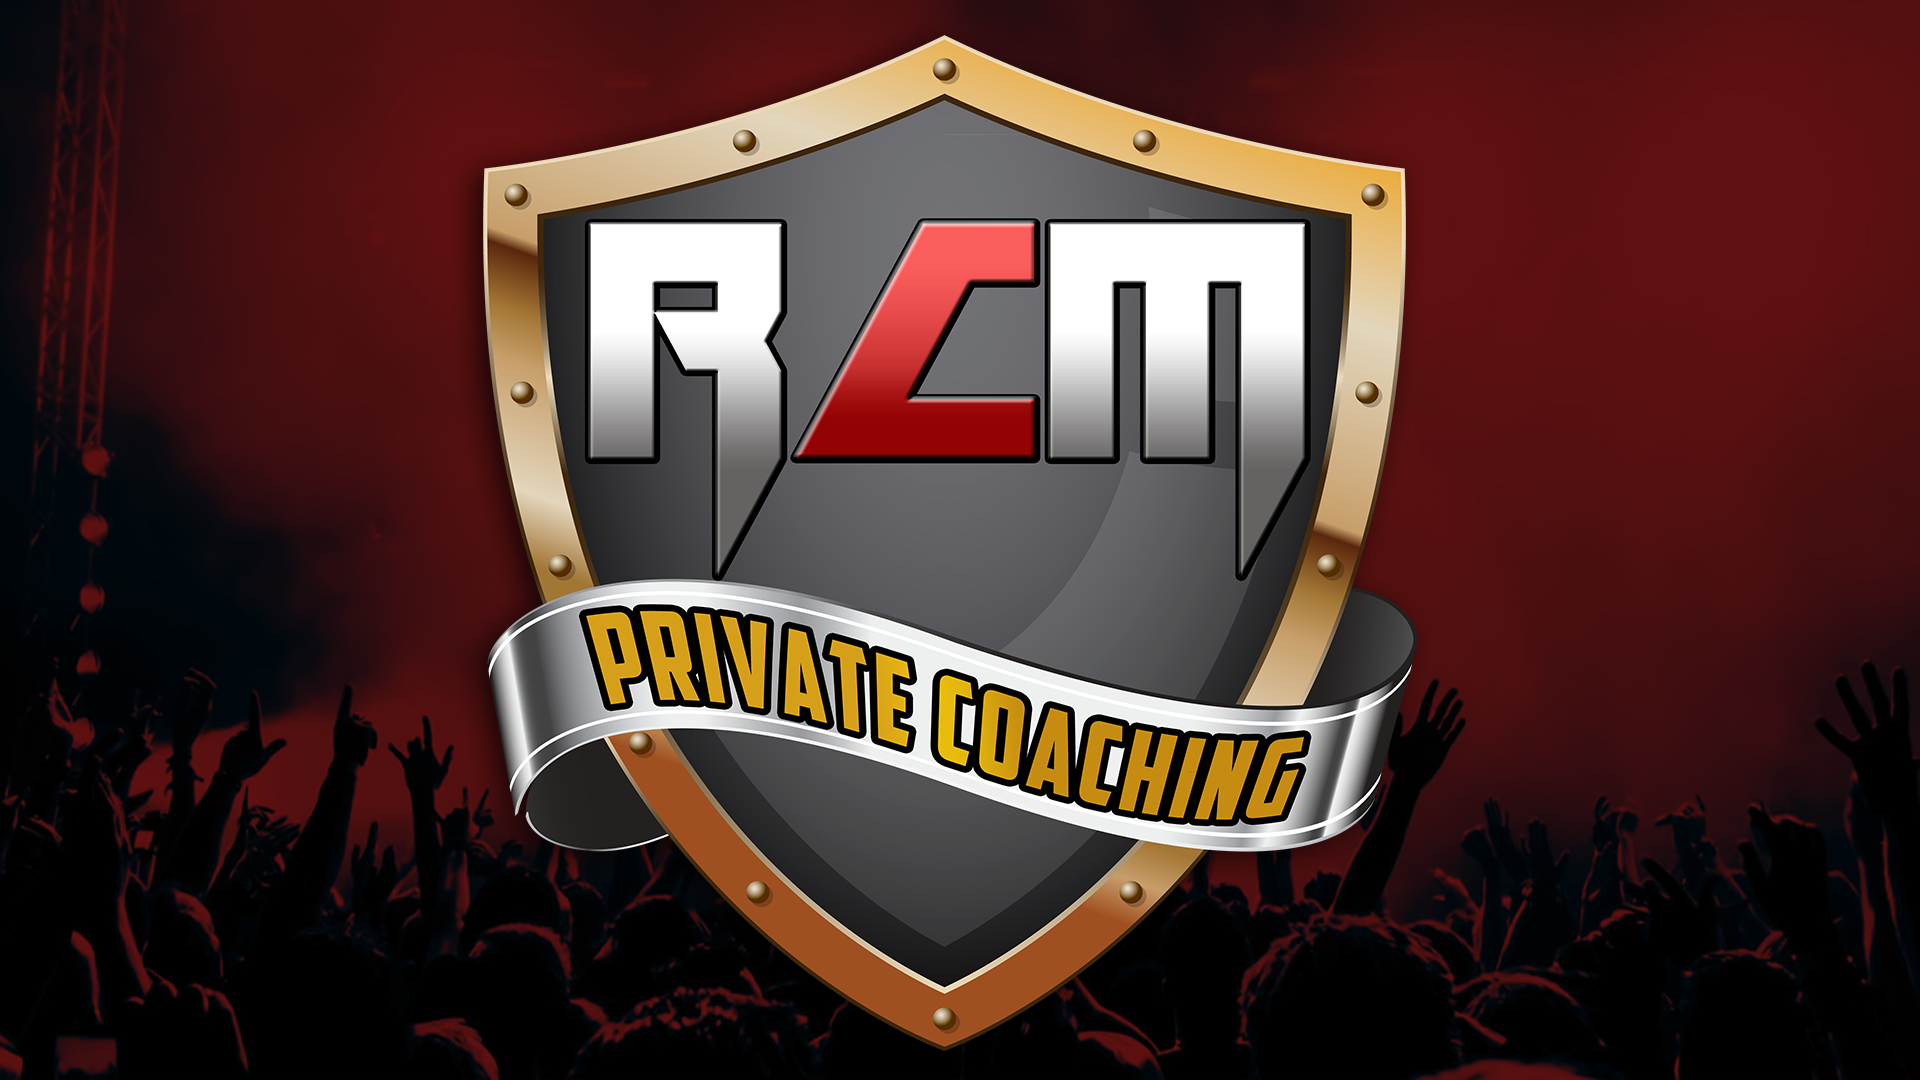 rcm-private-coaching